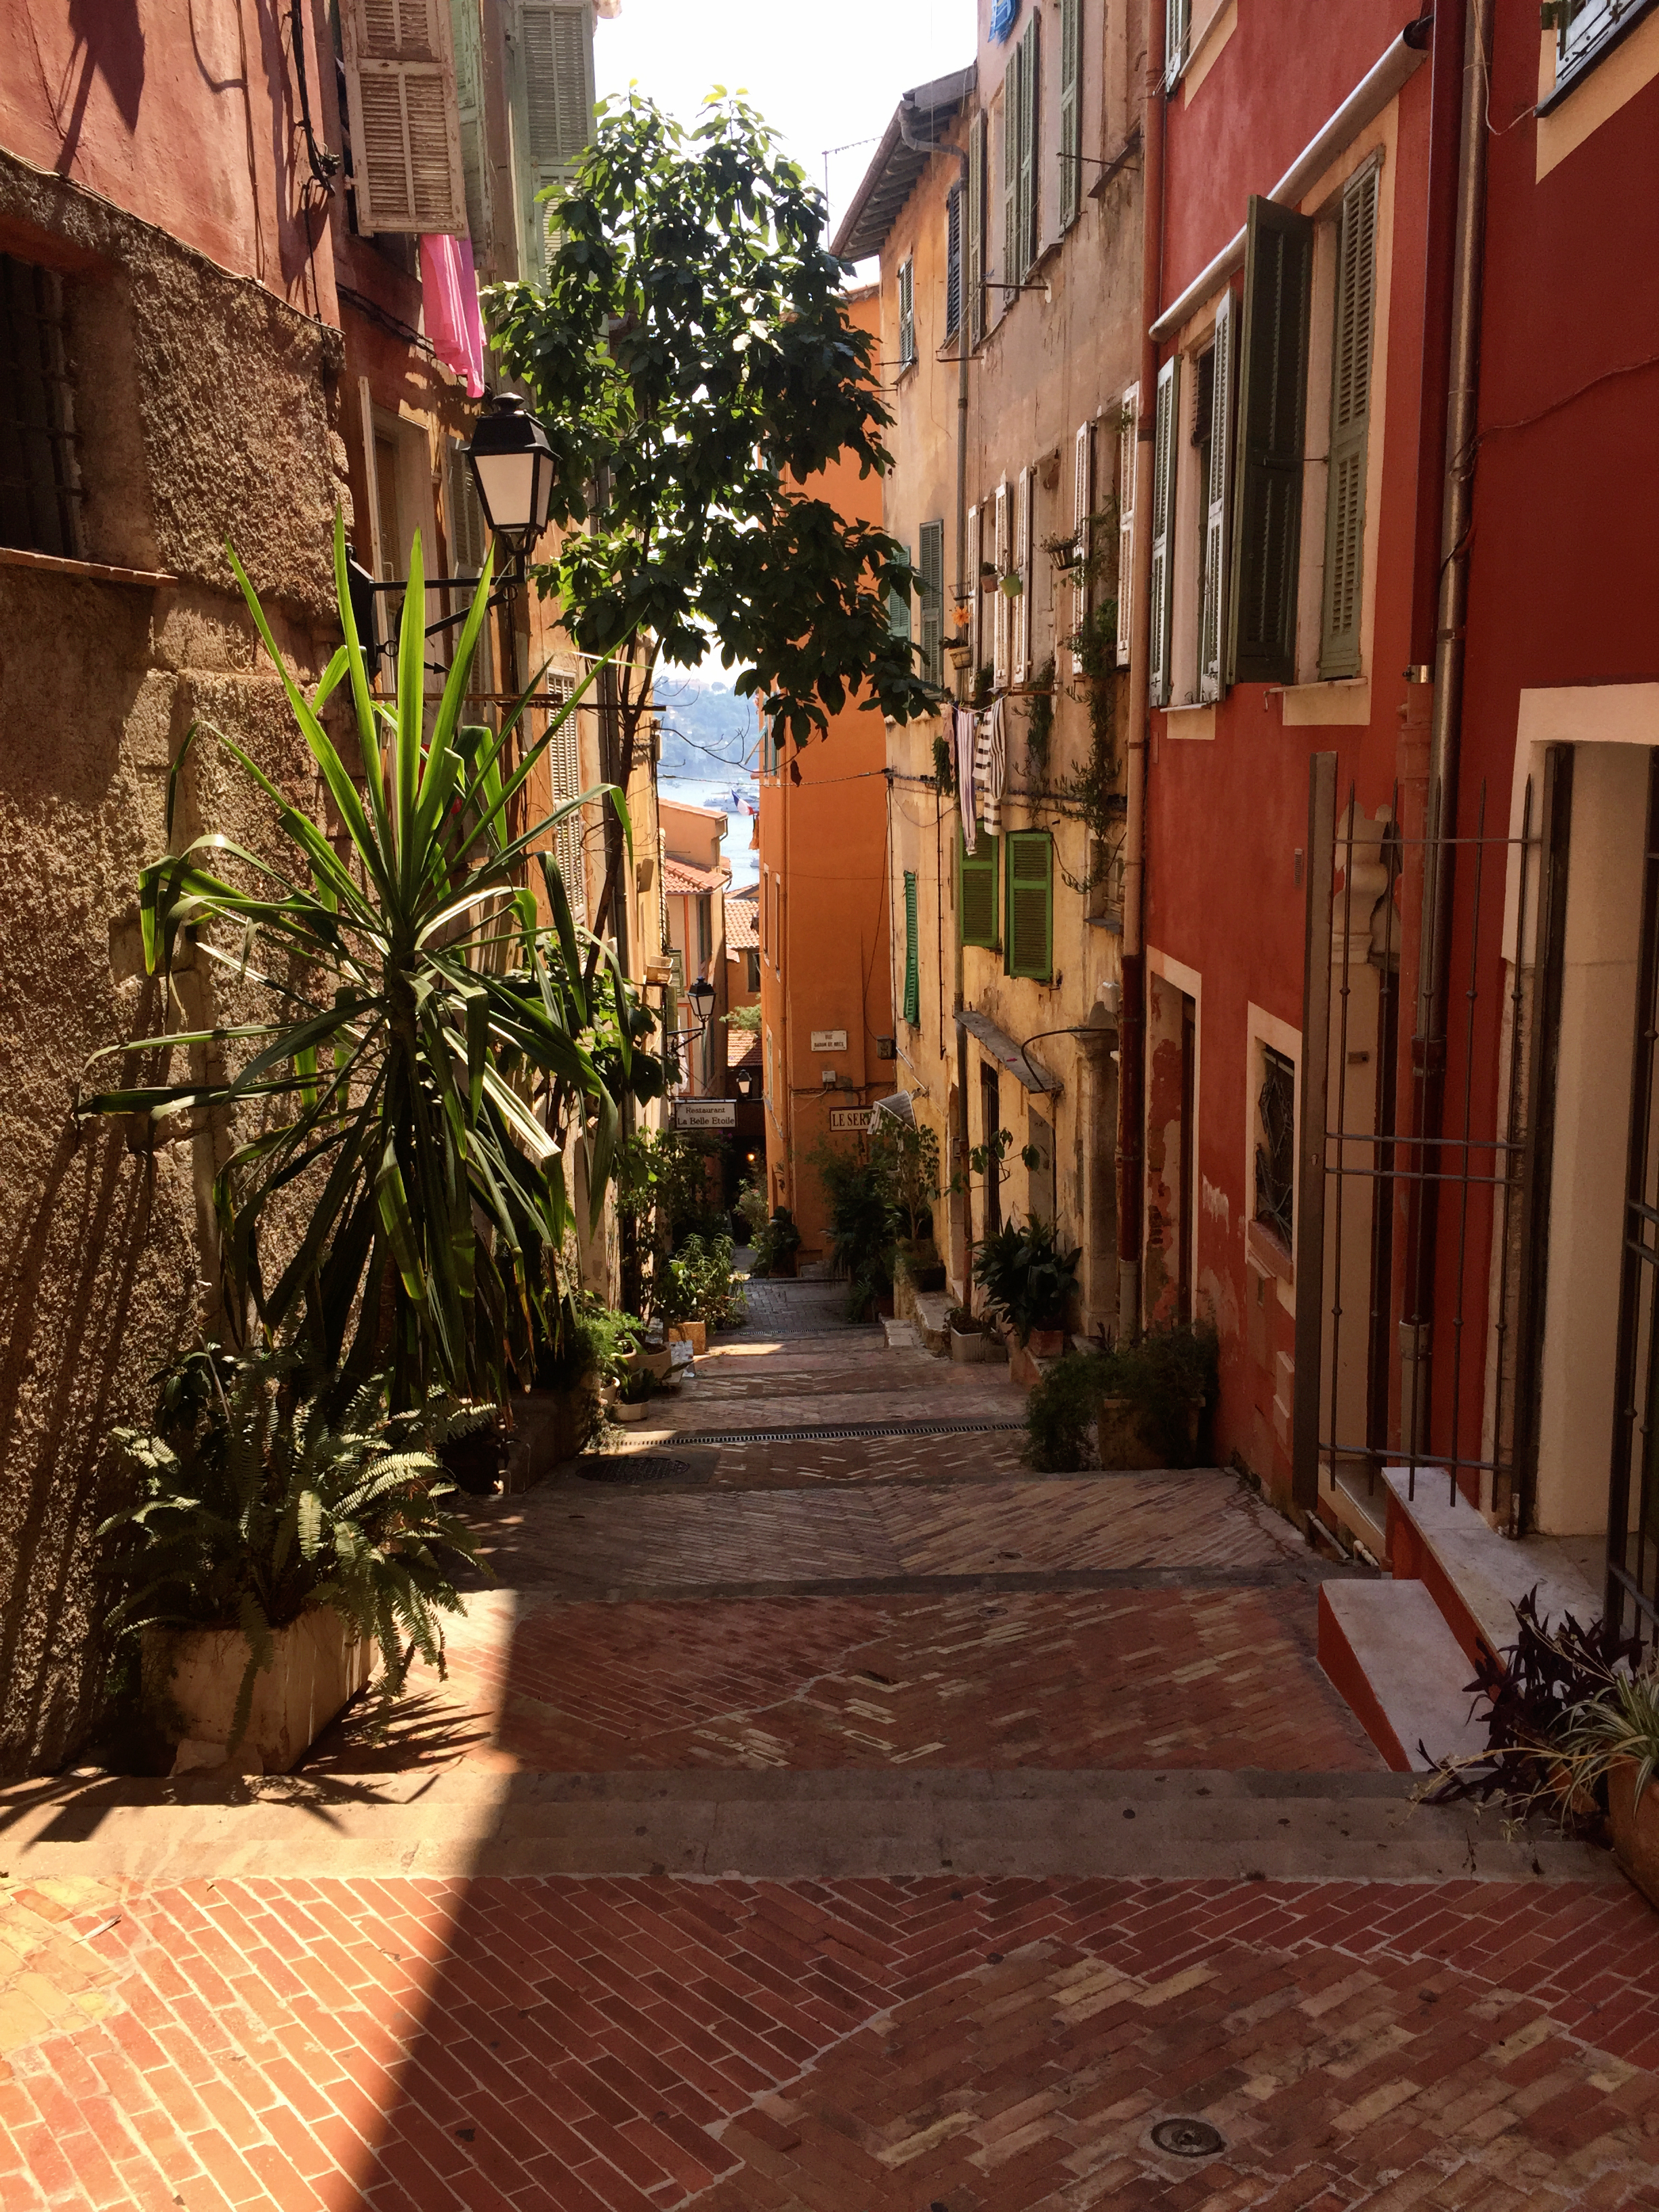 VILLEFRANCHE-SUR-MER | STREETS | FRENCH RIVIERA | NICE FRANCE | WE LOVE FOOD, IT'S ALL WE EAT3